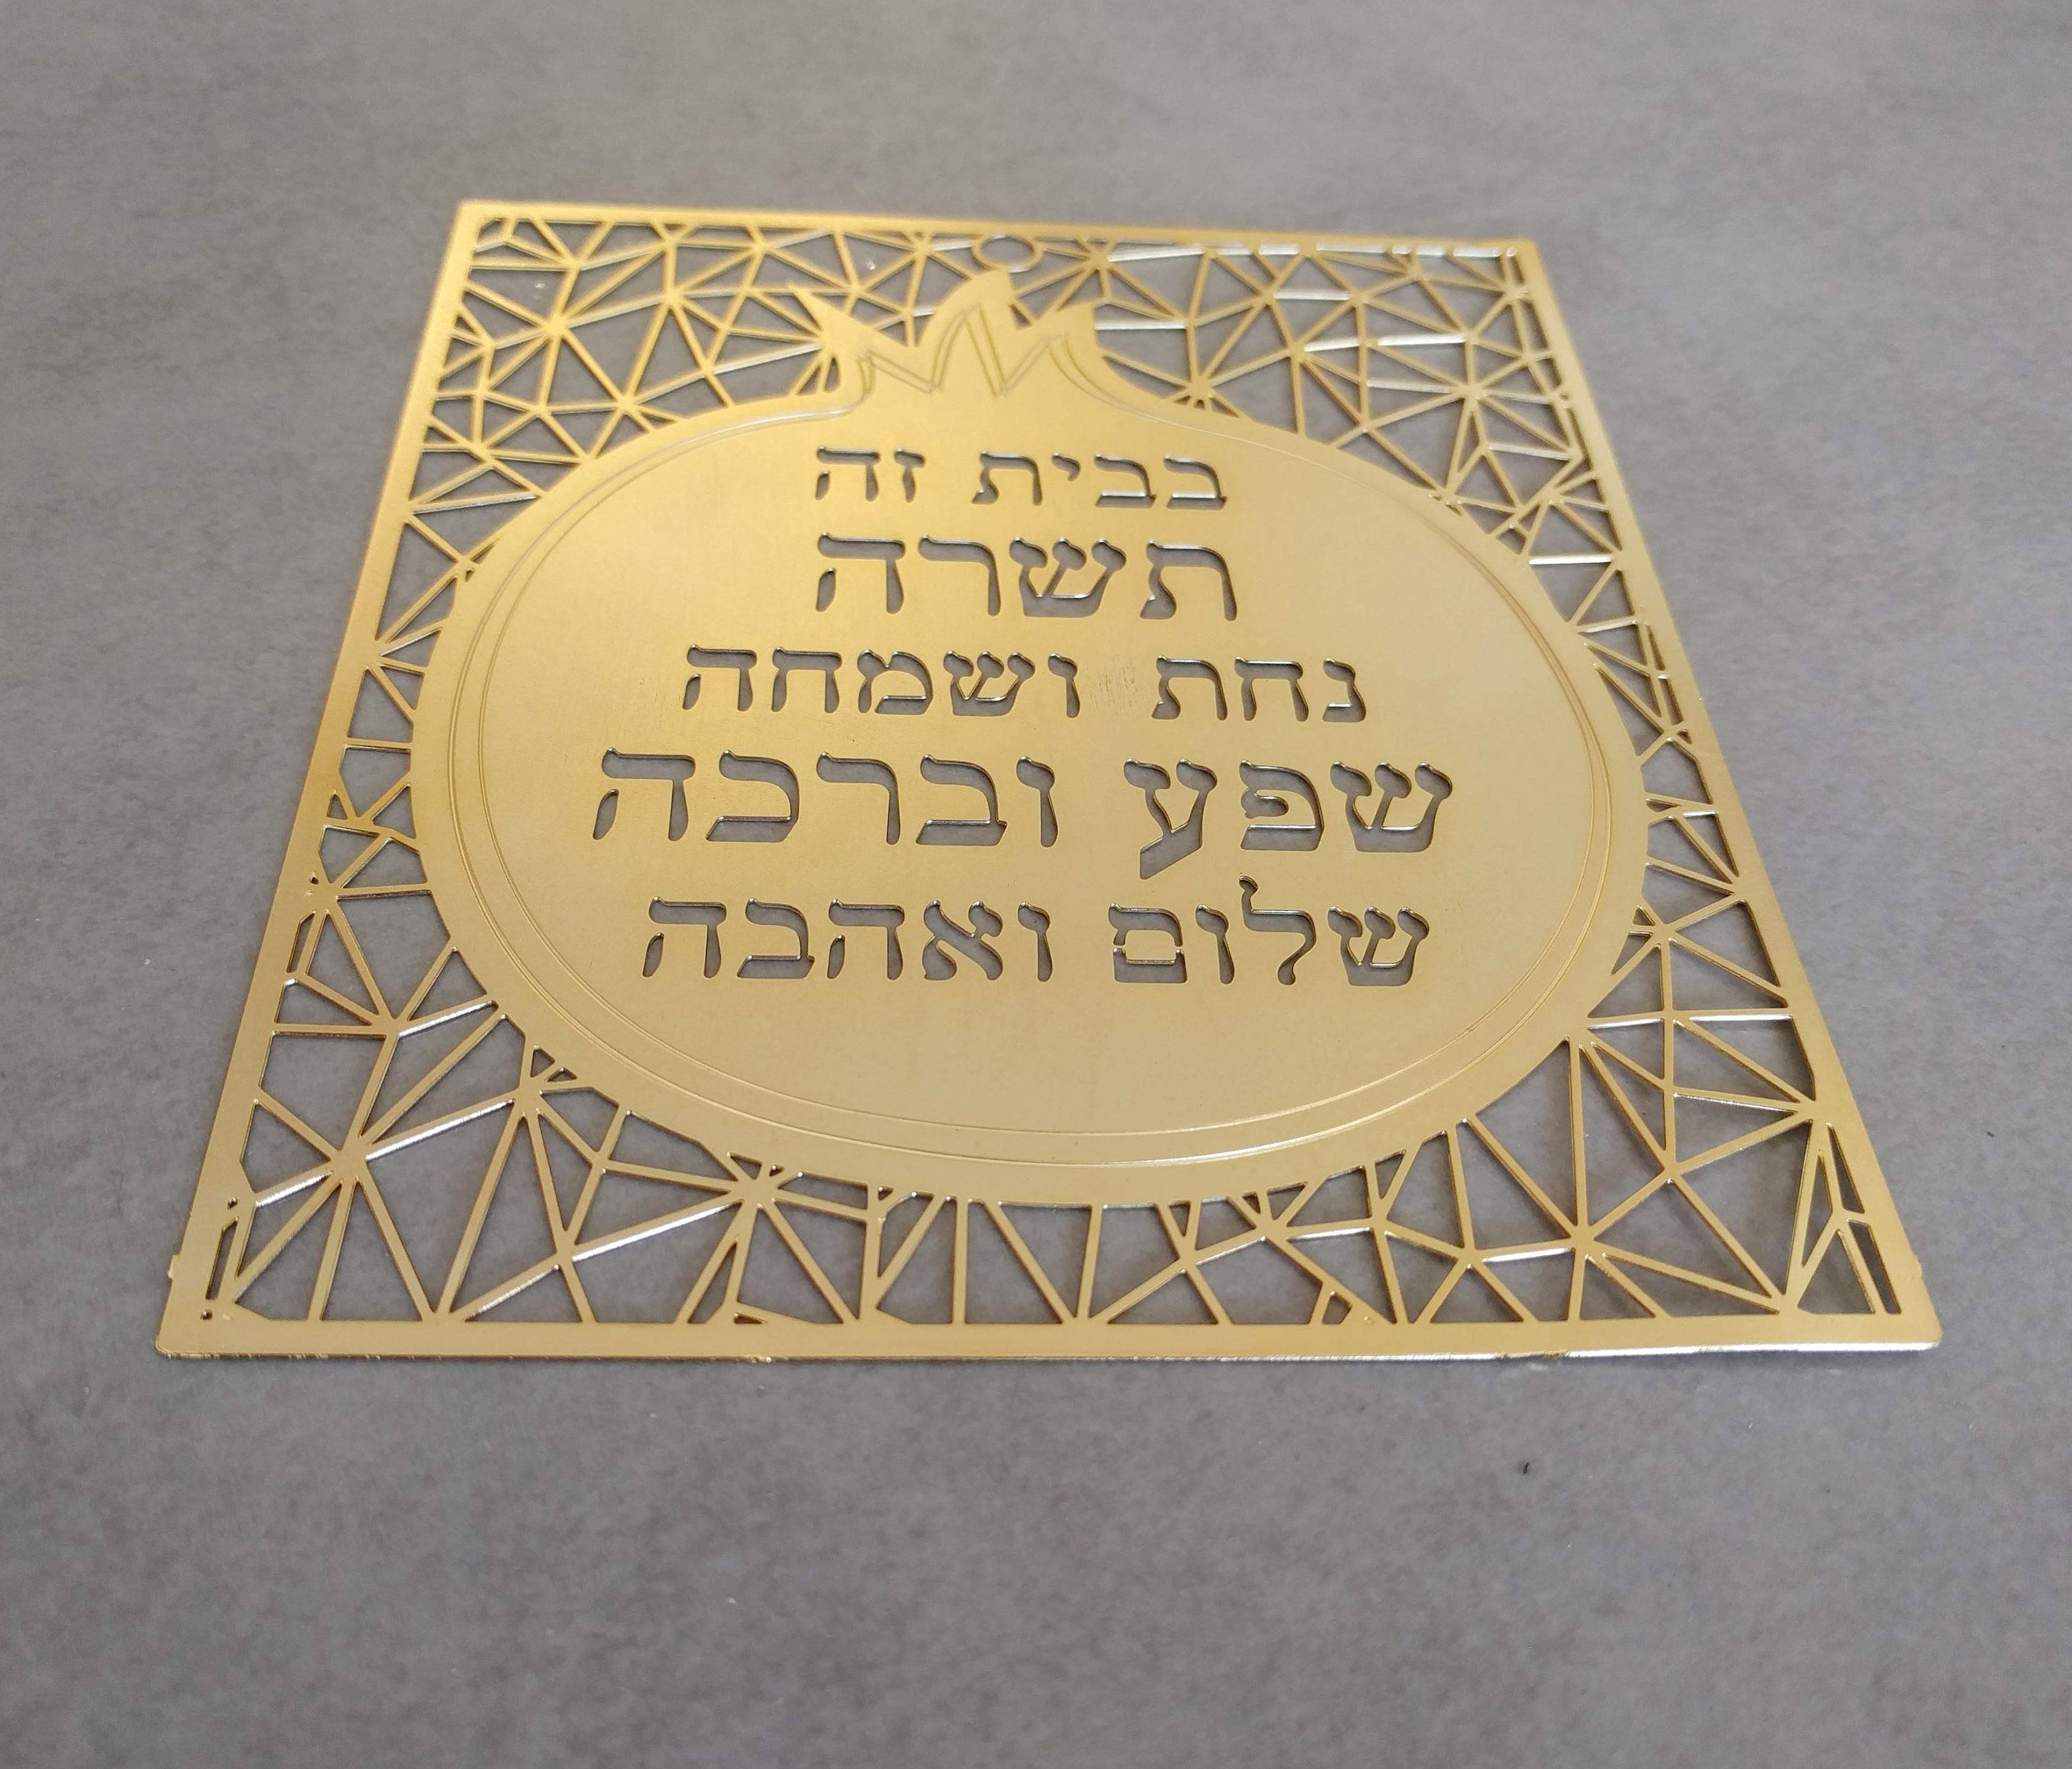 Jewish Home Blessing Jewish House Blessing Judaica Wall Art Etsy House Blessing House Warming Gifts Etsy Wall Art